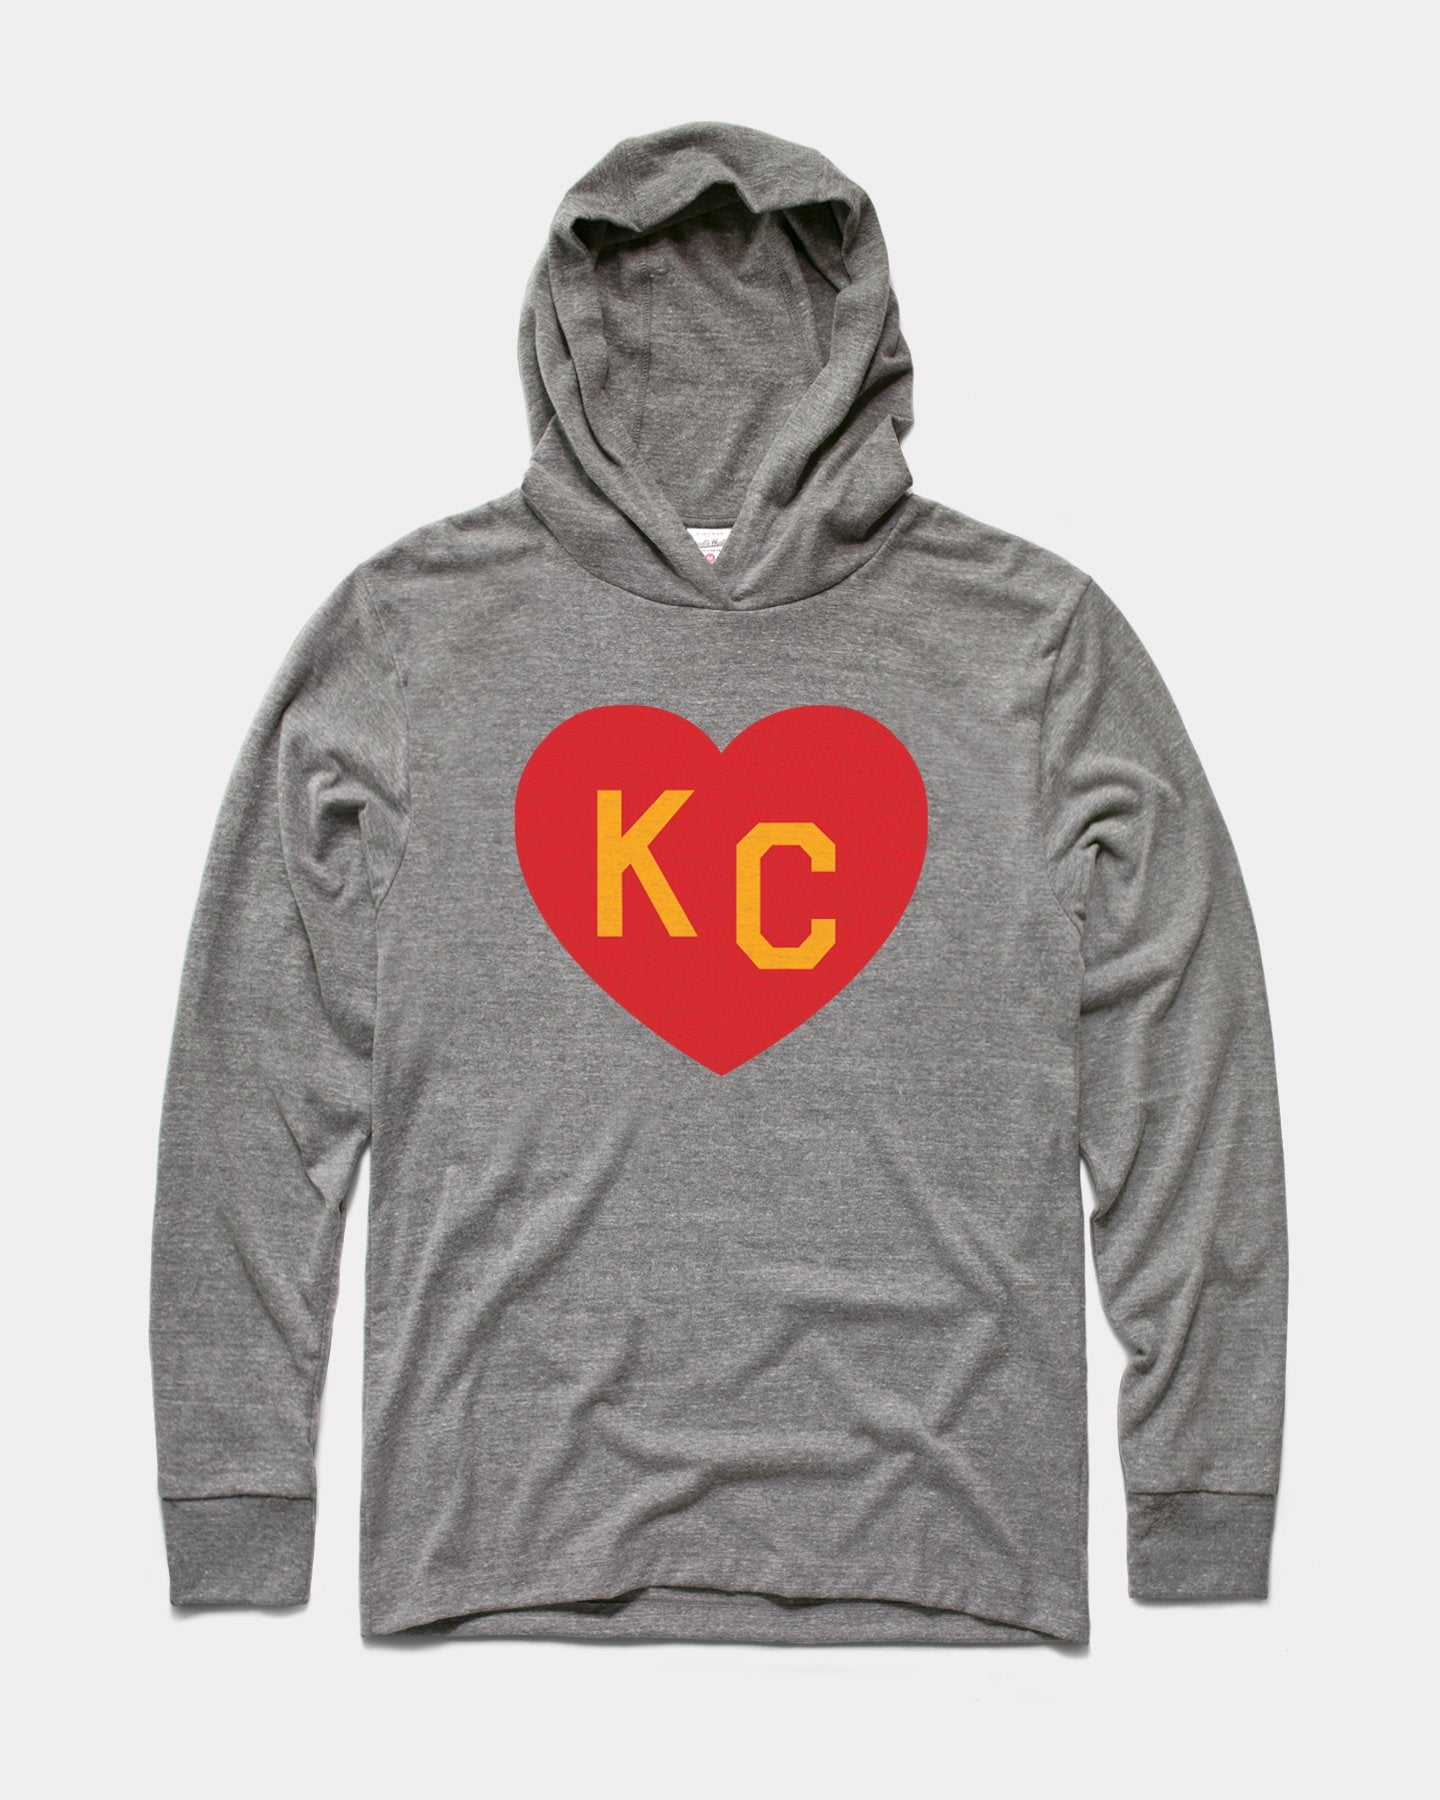 Grey Arrowhead Kingdom KC Heart Vintage Lightweight Hoodie Sweatshirt